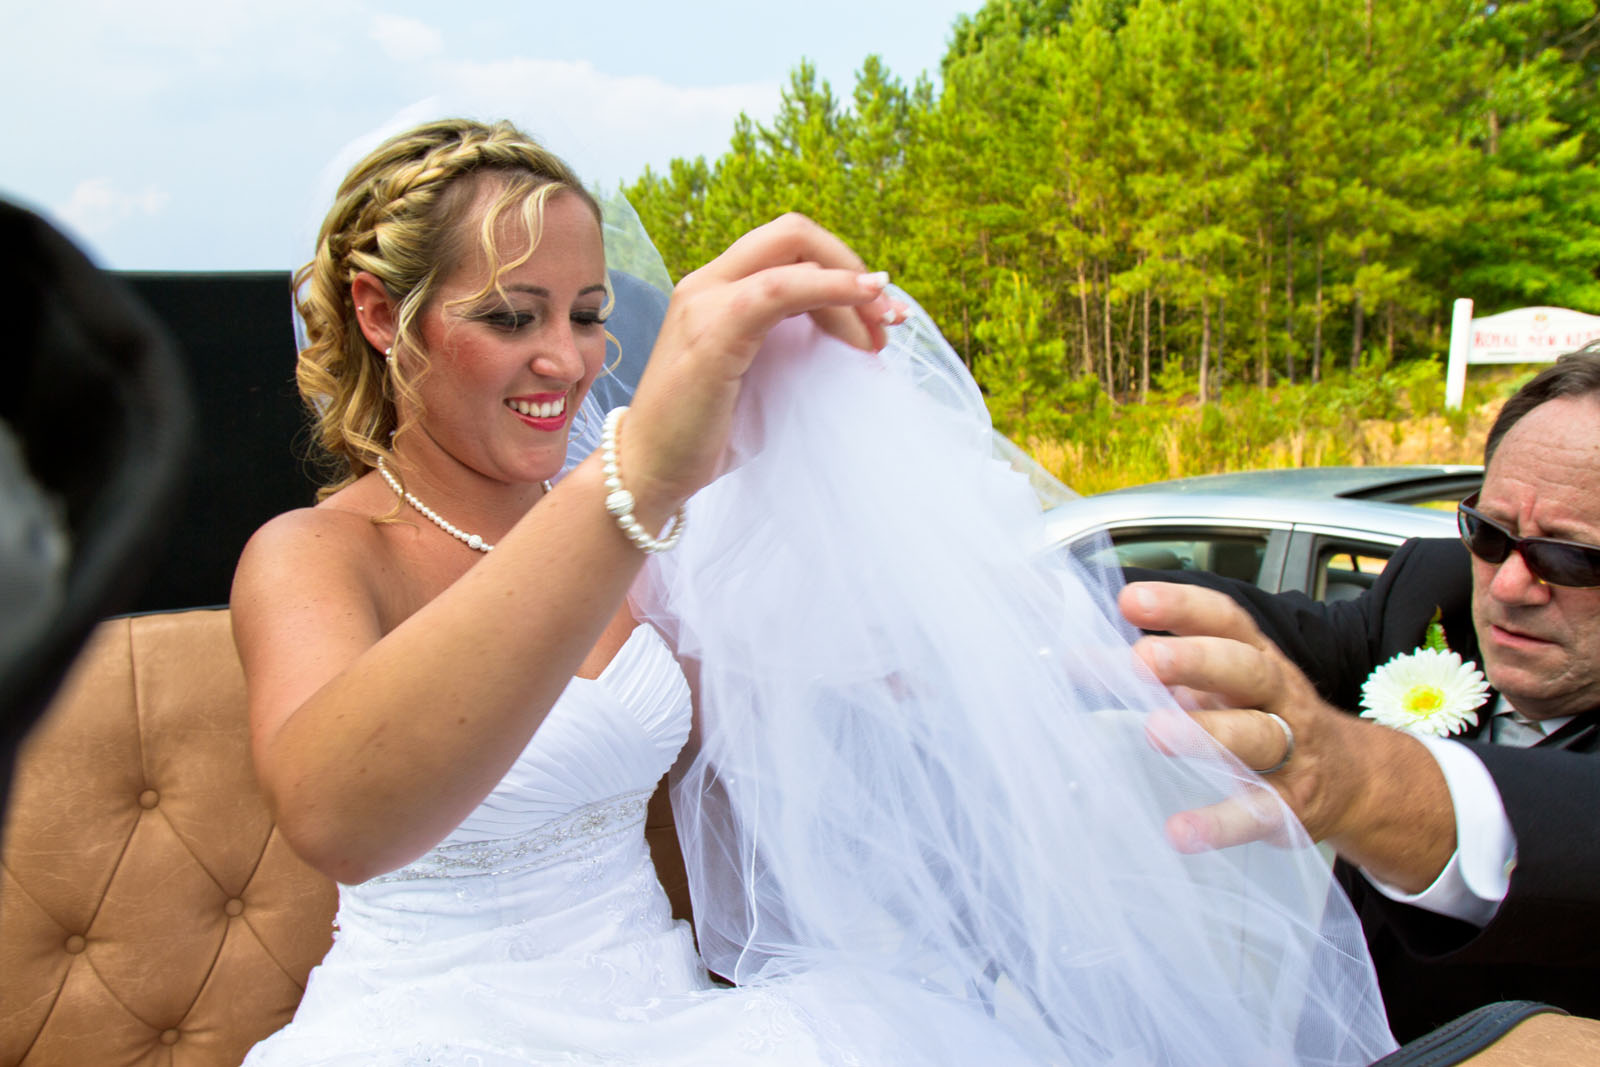 bride-and-groom-50-of-1-7